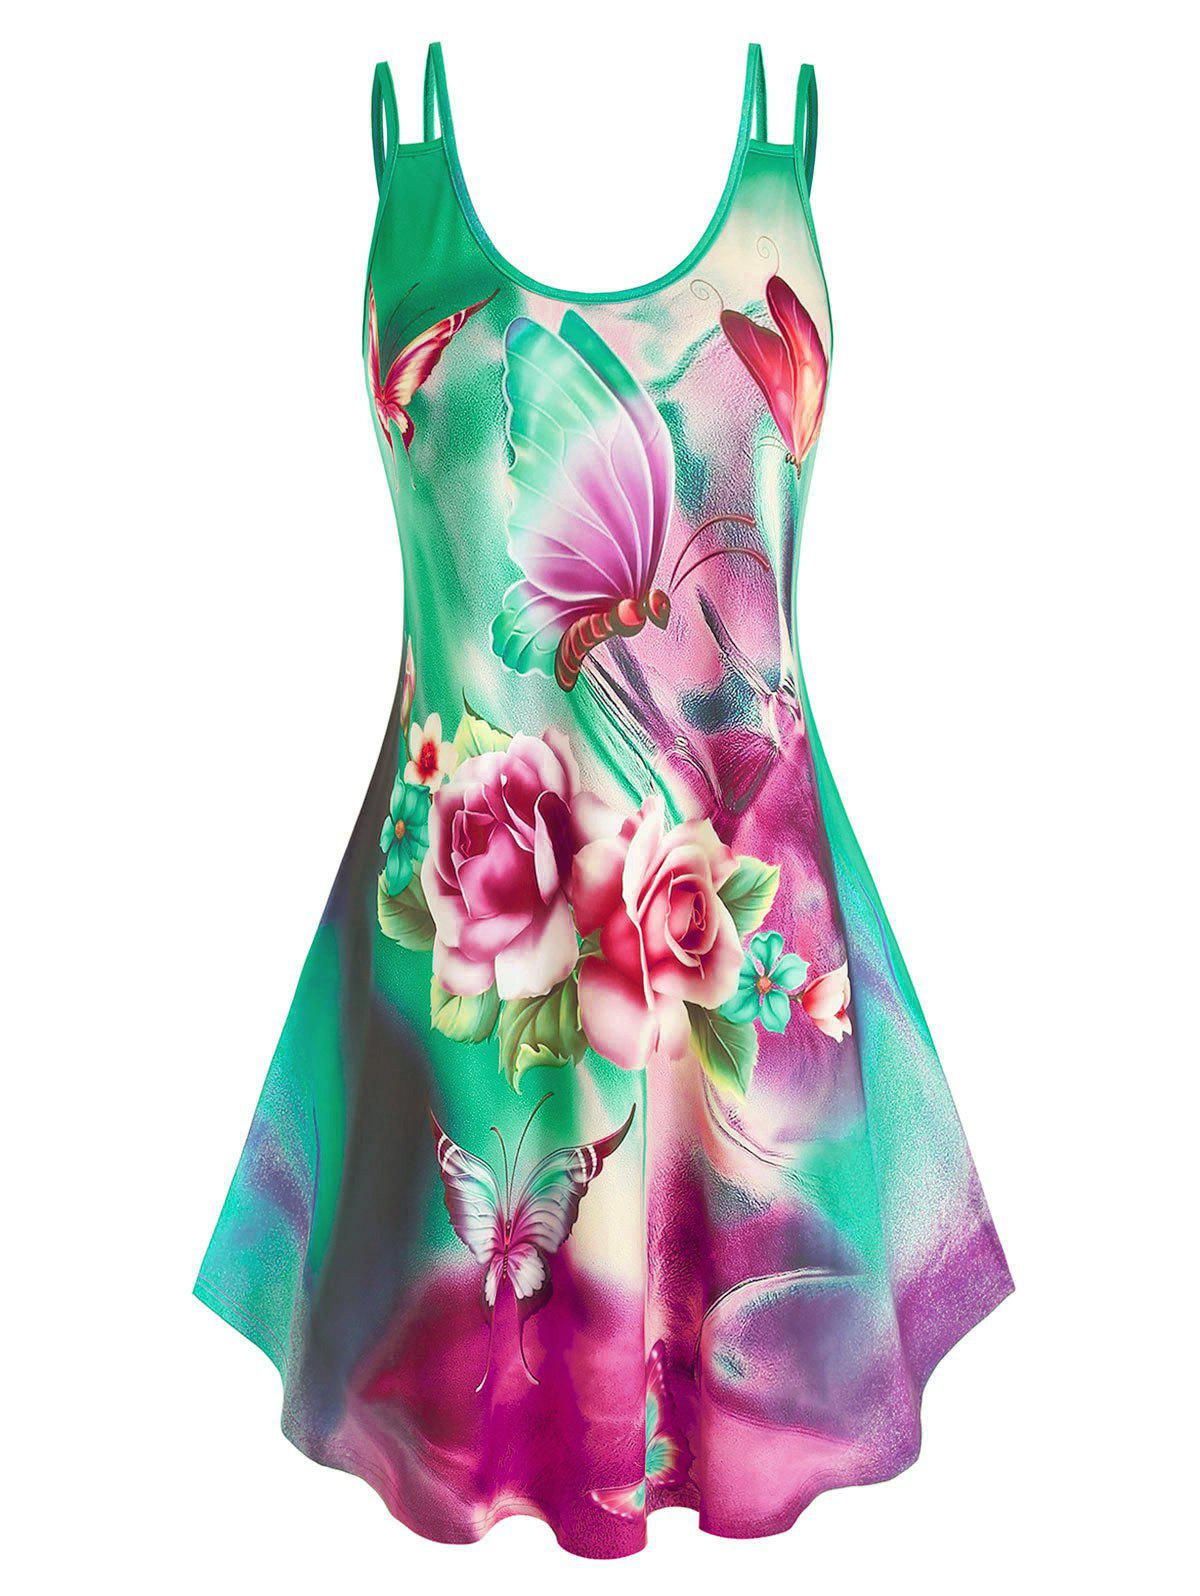 Plus Size Multicolored Flower Printed Dress - GREEN L